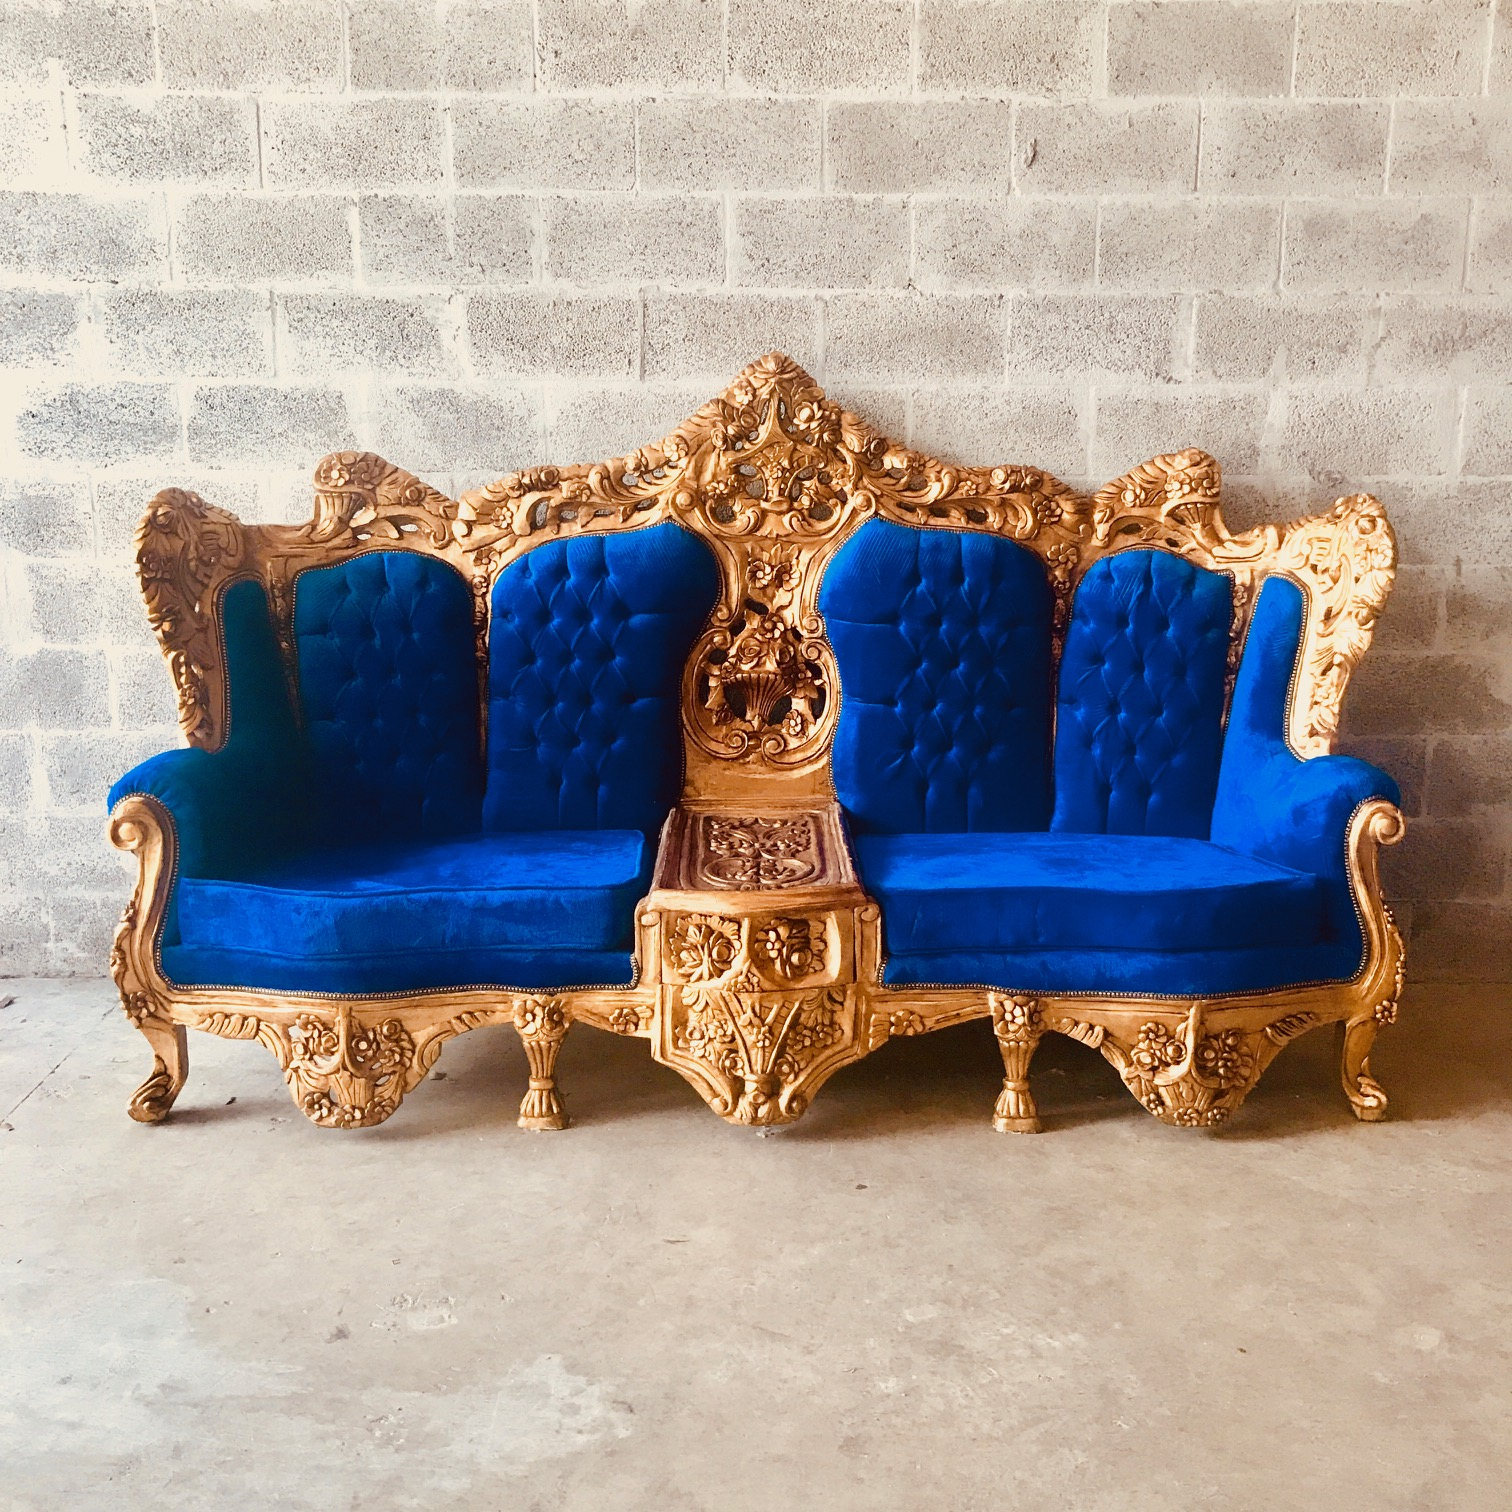 Sold Rococo Throne Antique Furniture Blue Velvet Tufted Settee Gold Leaf French Settee Louis Xvi French Furniture Throne Settee Baroque